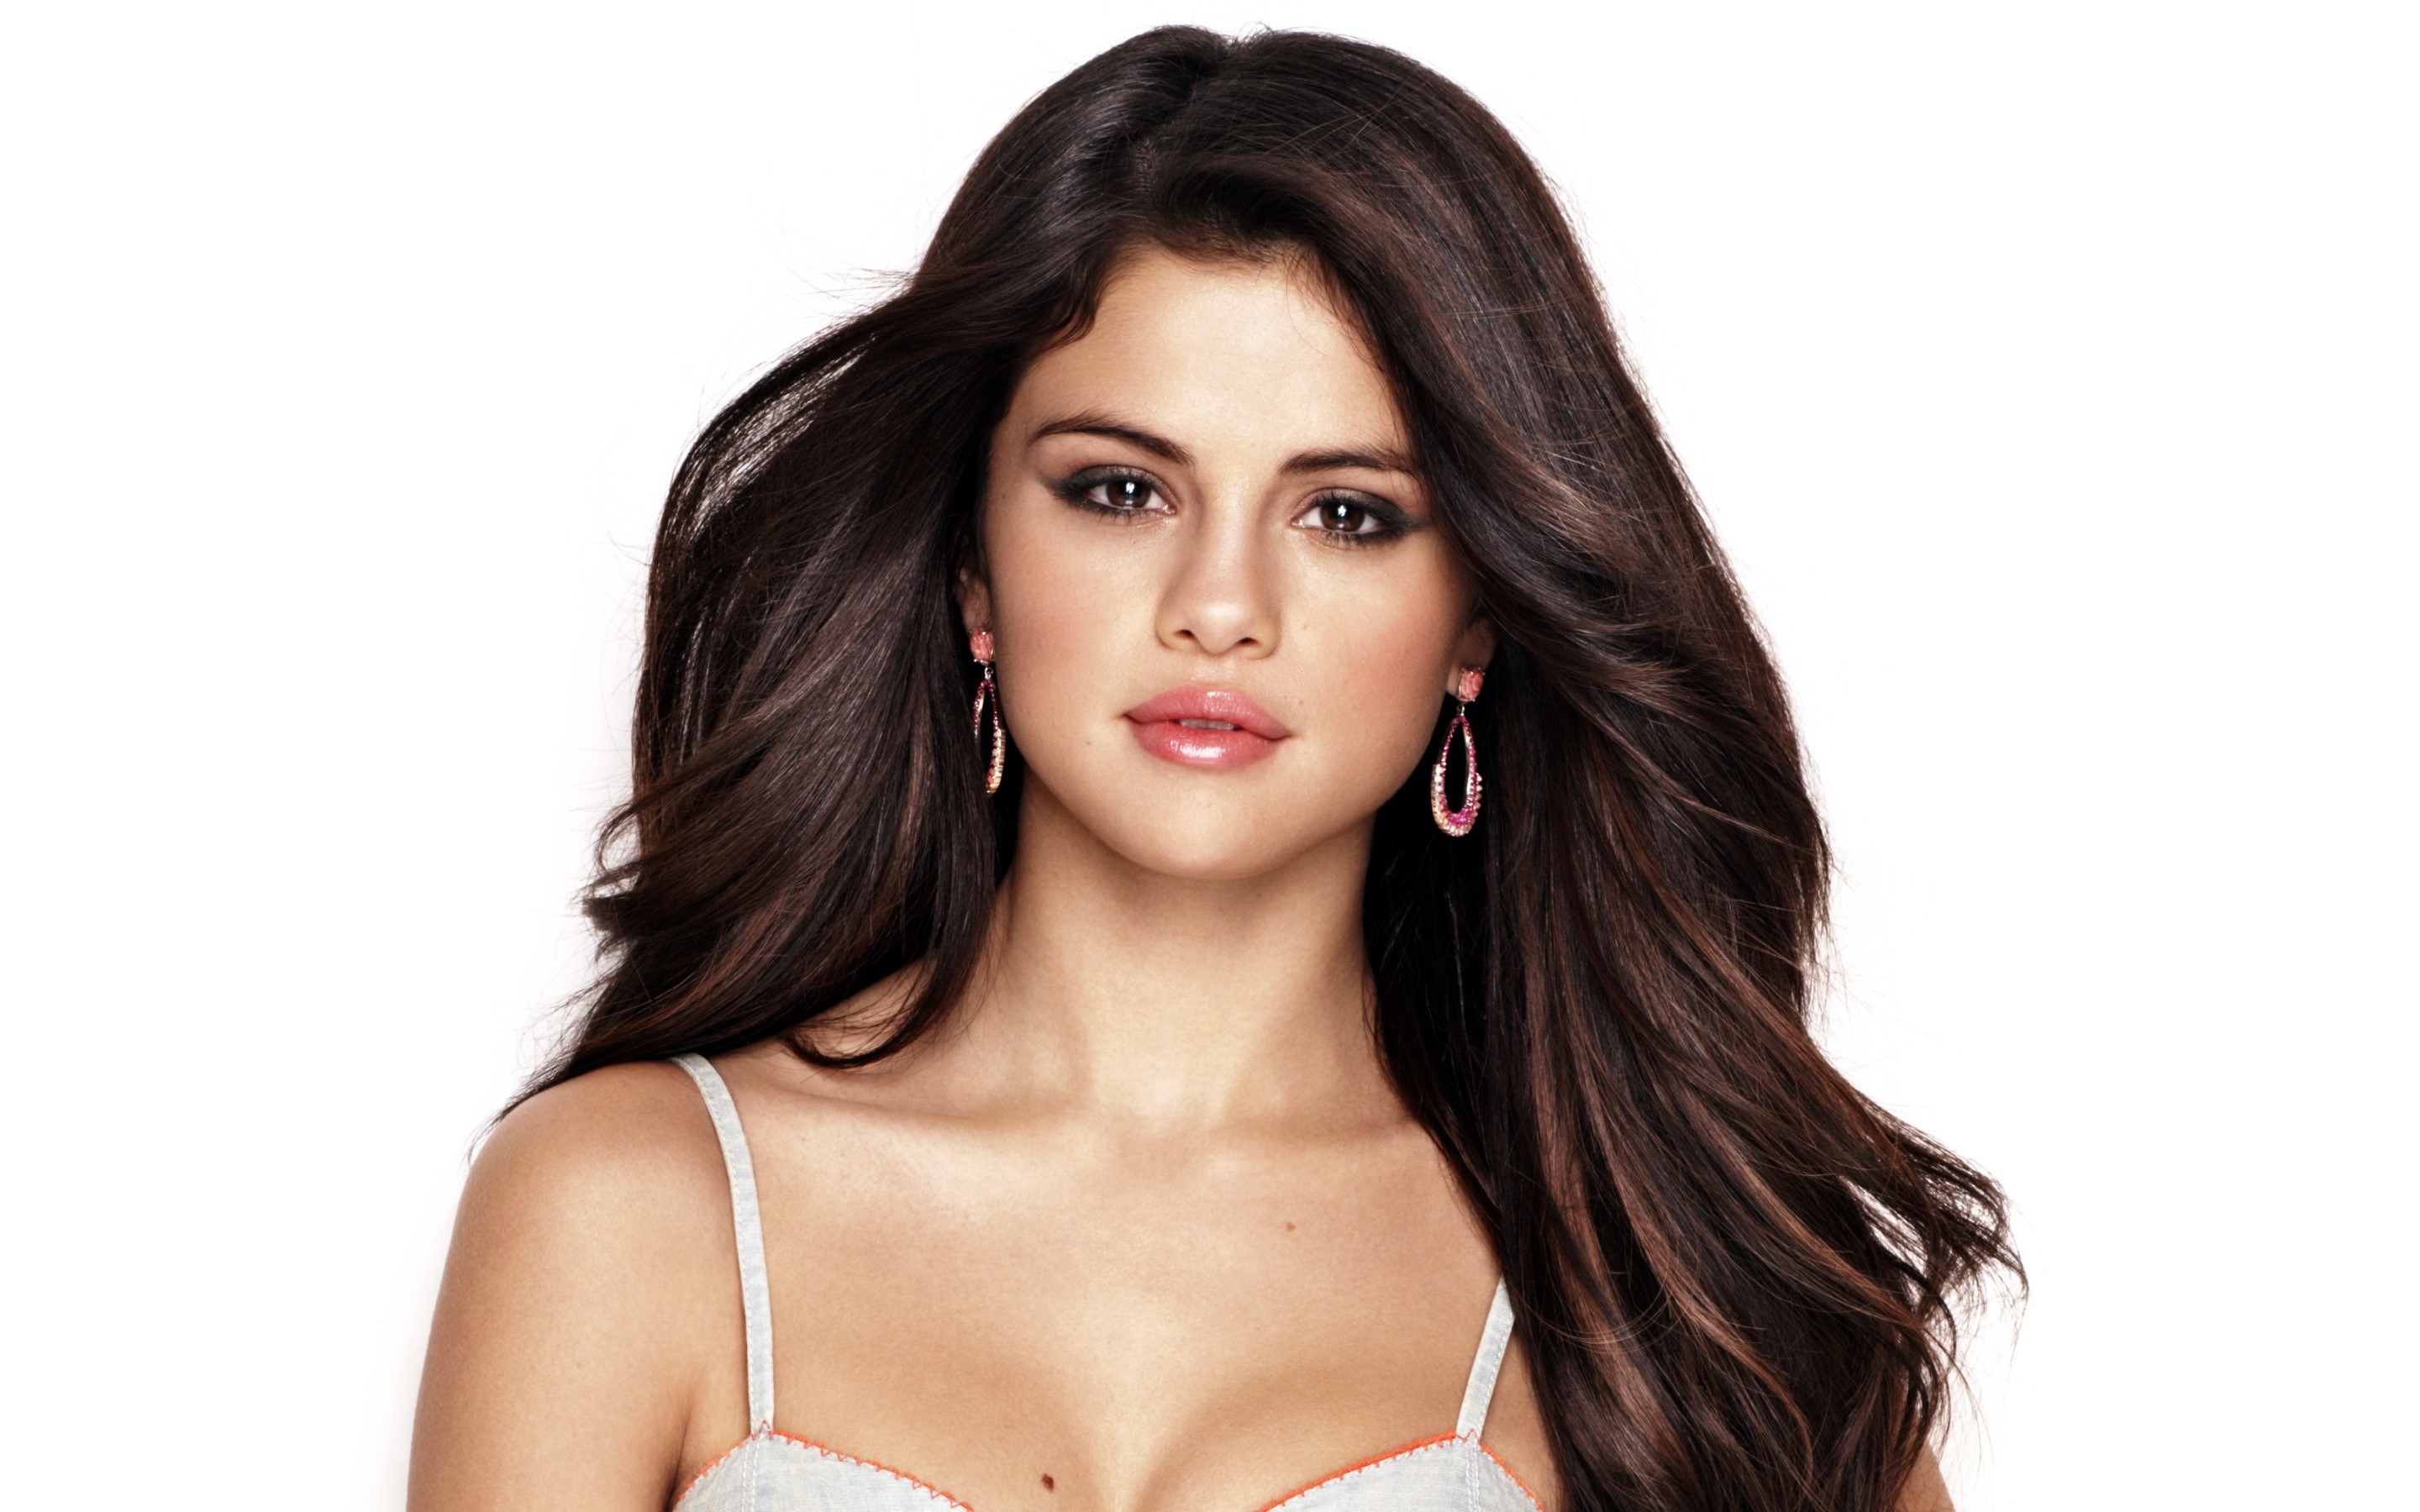 Wallpaper Selena Gomez con cabello lacio Images